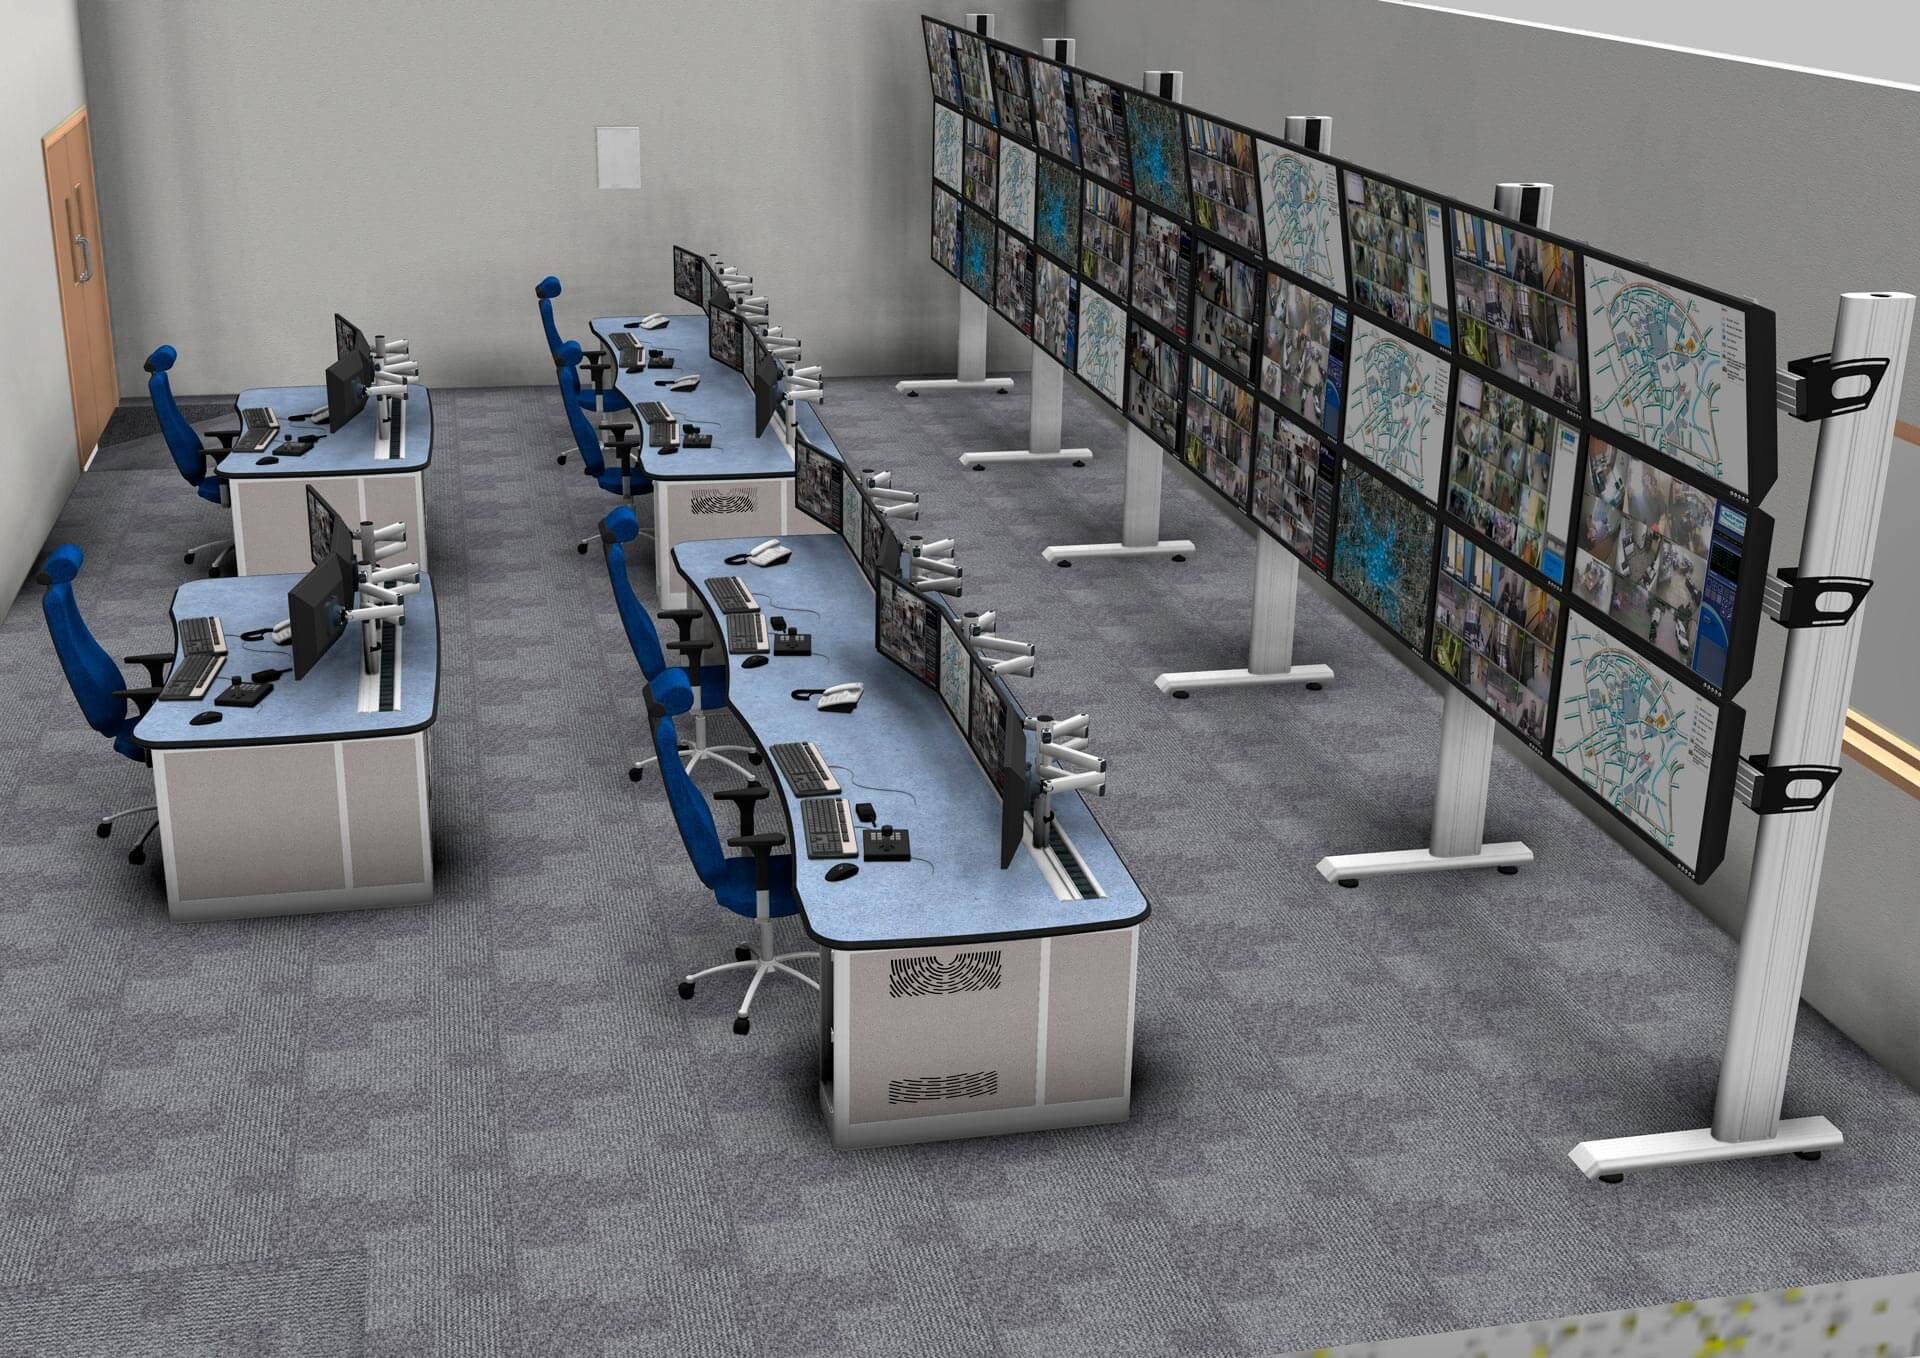 render-proposal-drawing-blackburn-control-room-furniture-thinking-space